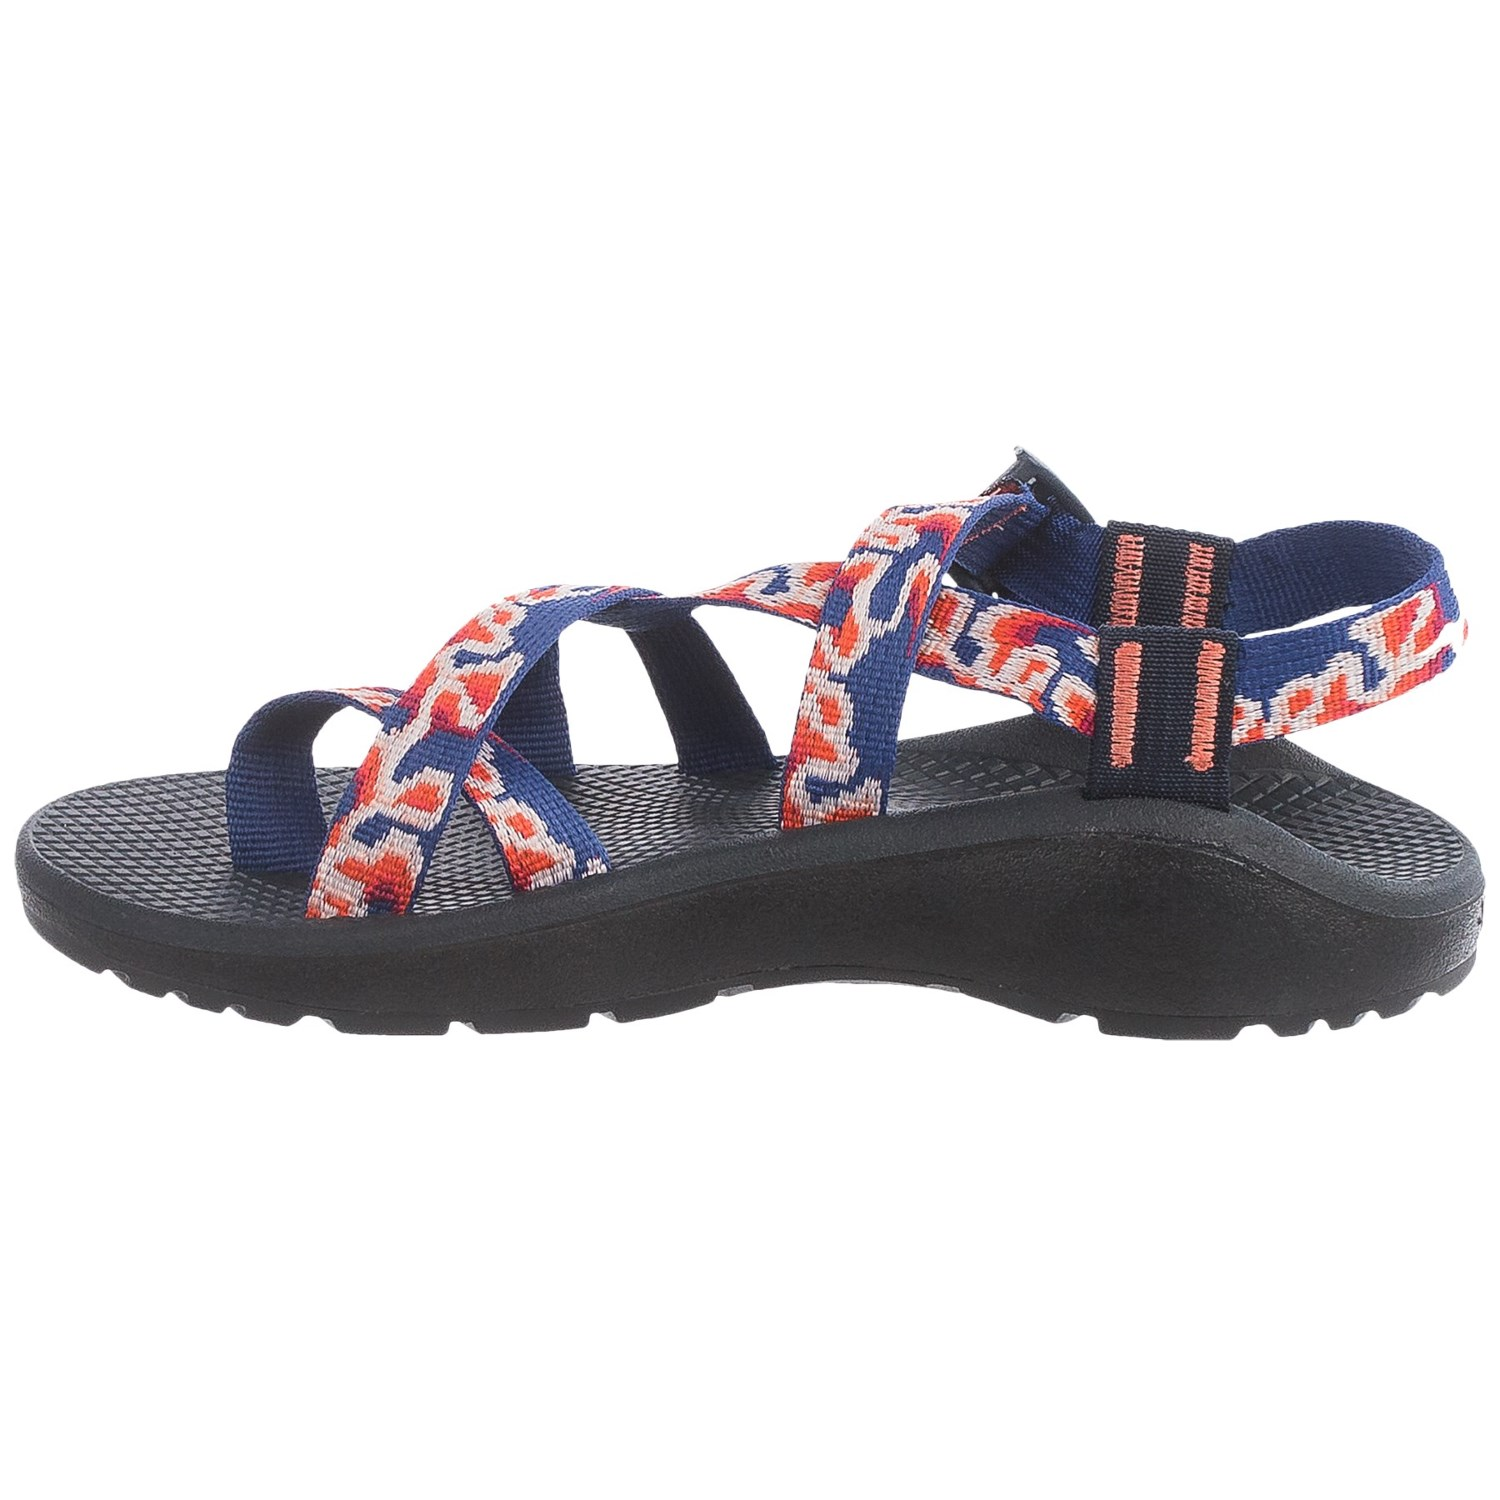 e9a4afbc979c Chaco Z Cloud 2 Sport Sandals (For Women) - Save 45%